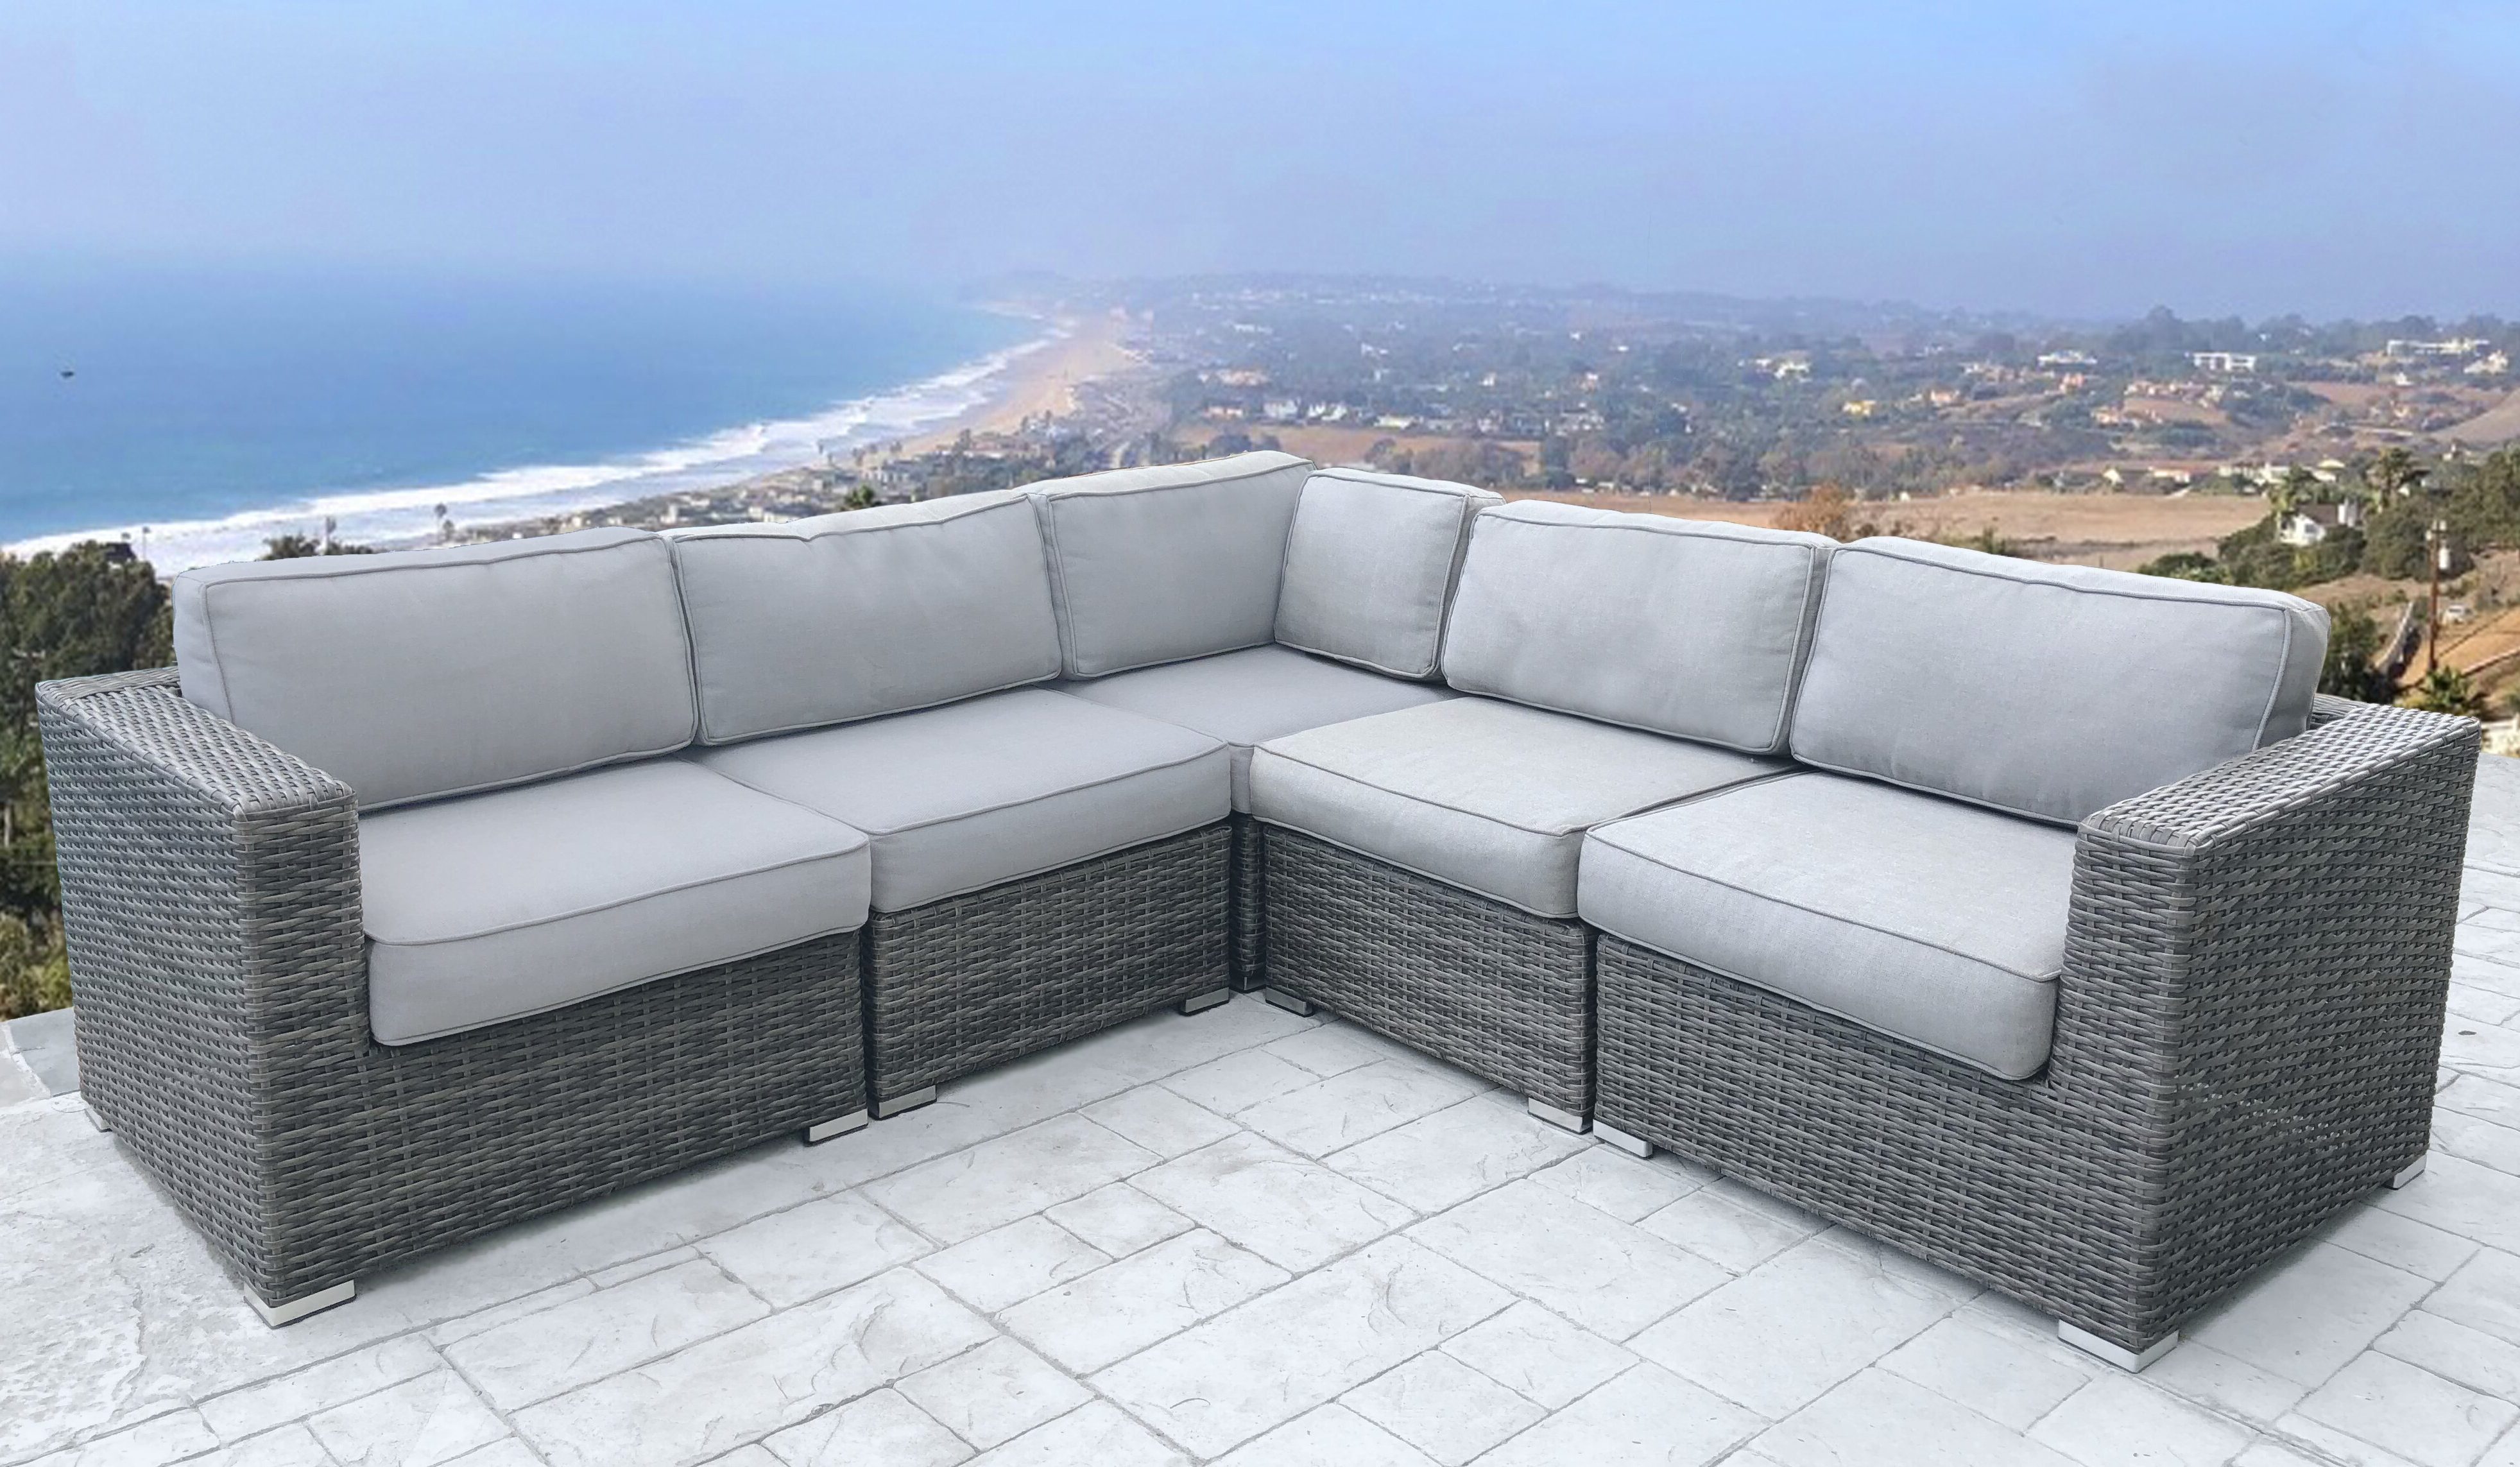 Antonia Teak Patio Sectionals With Cushions With Regard To Famous Nolen Patio Sectional With Cushions (View 8 of 25)